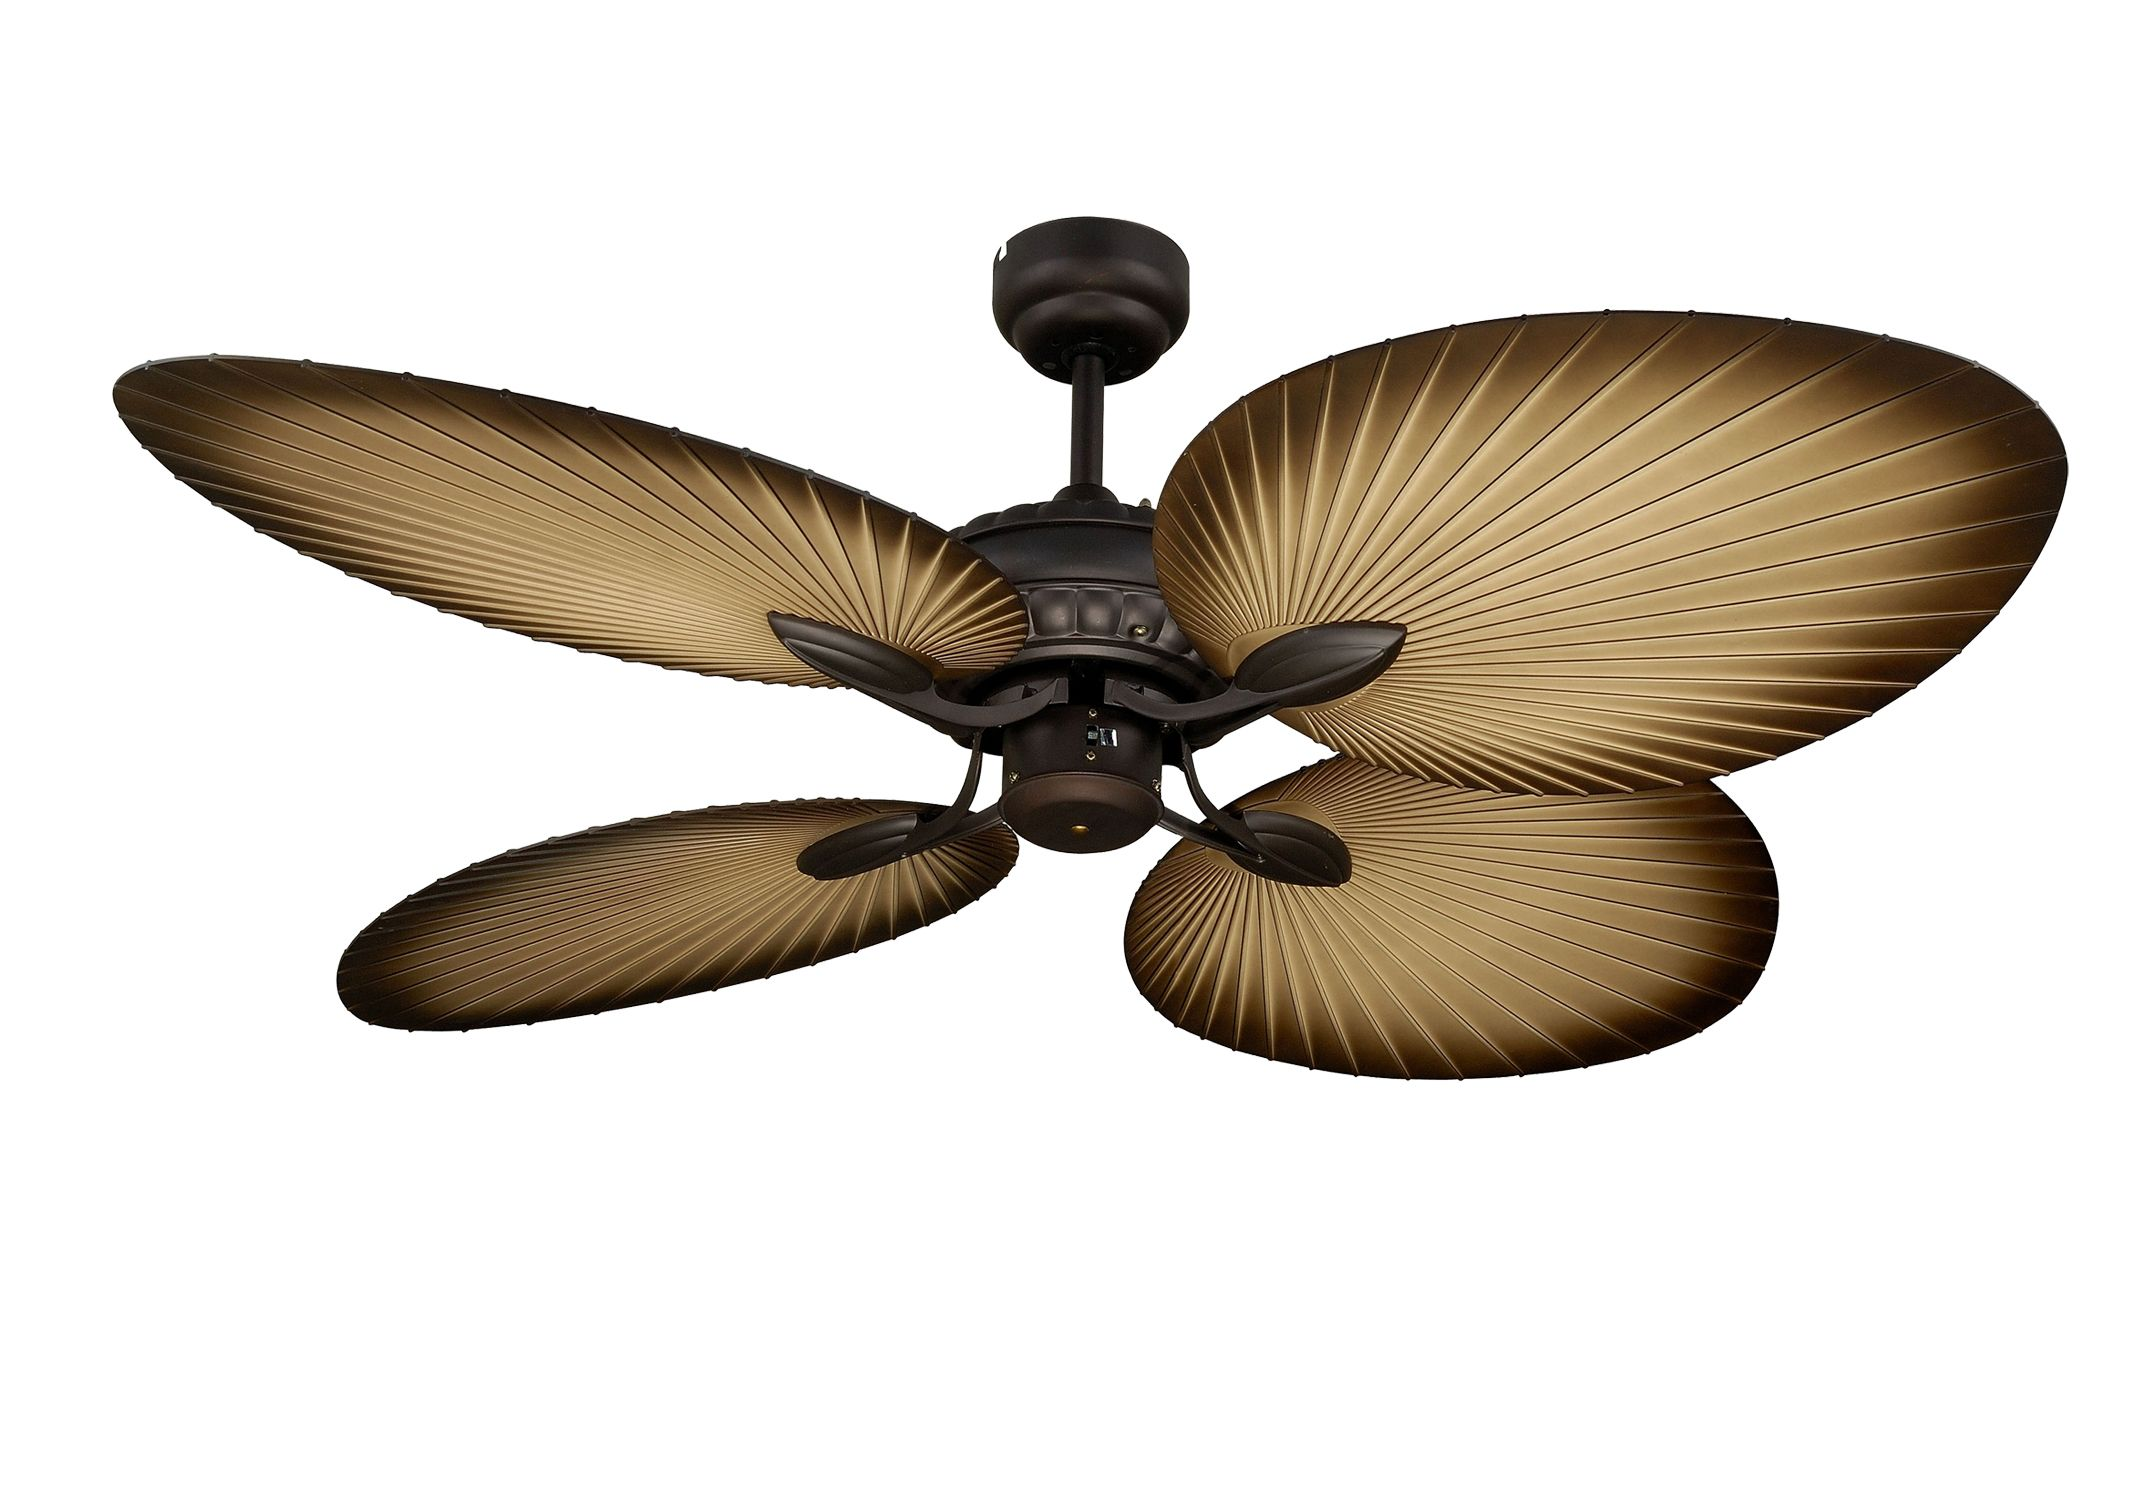 Pin By Martec Australia On Martec Ceiling Fans